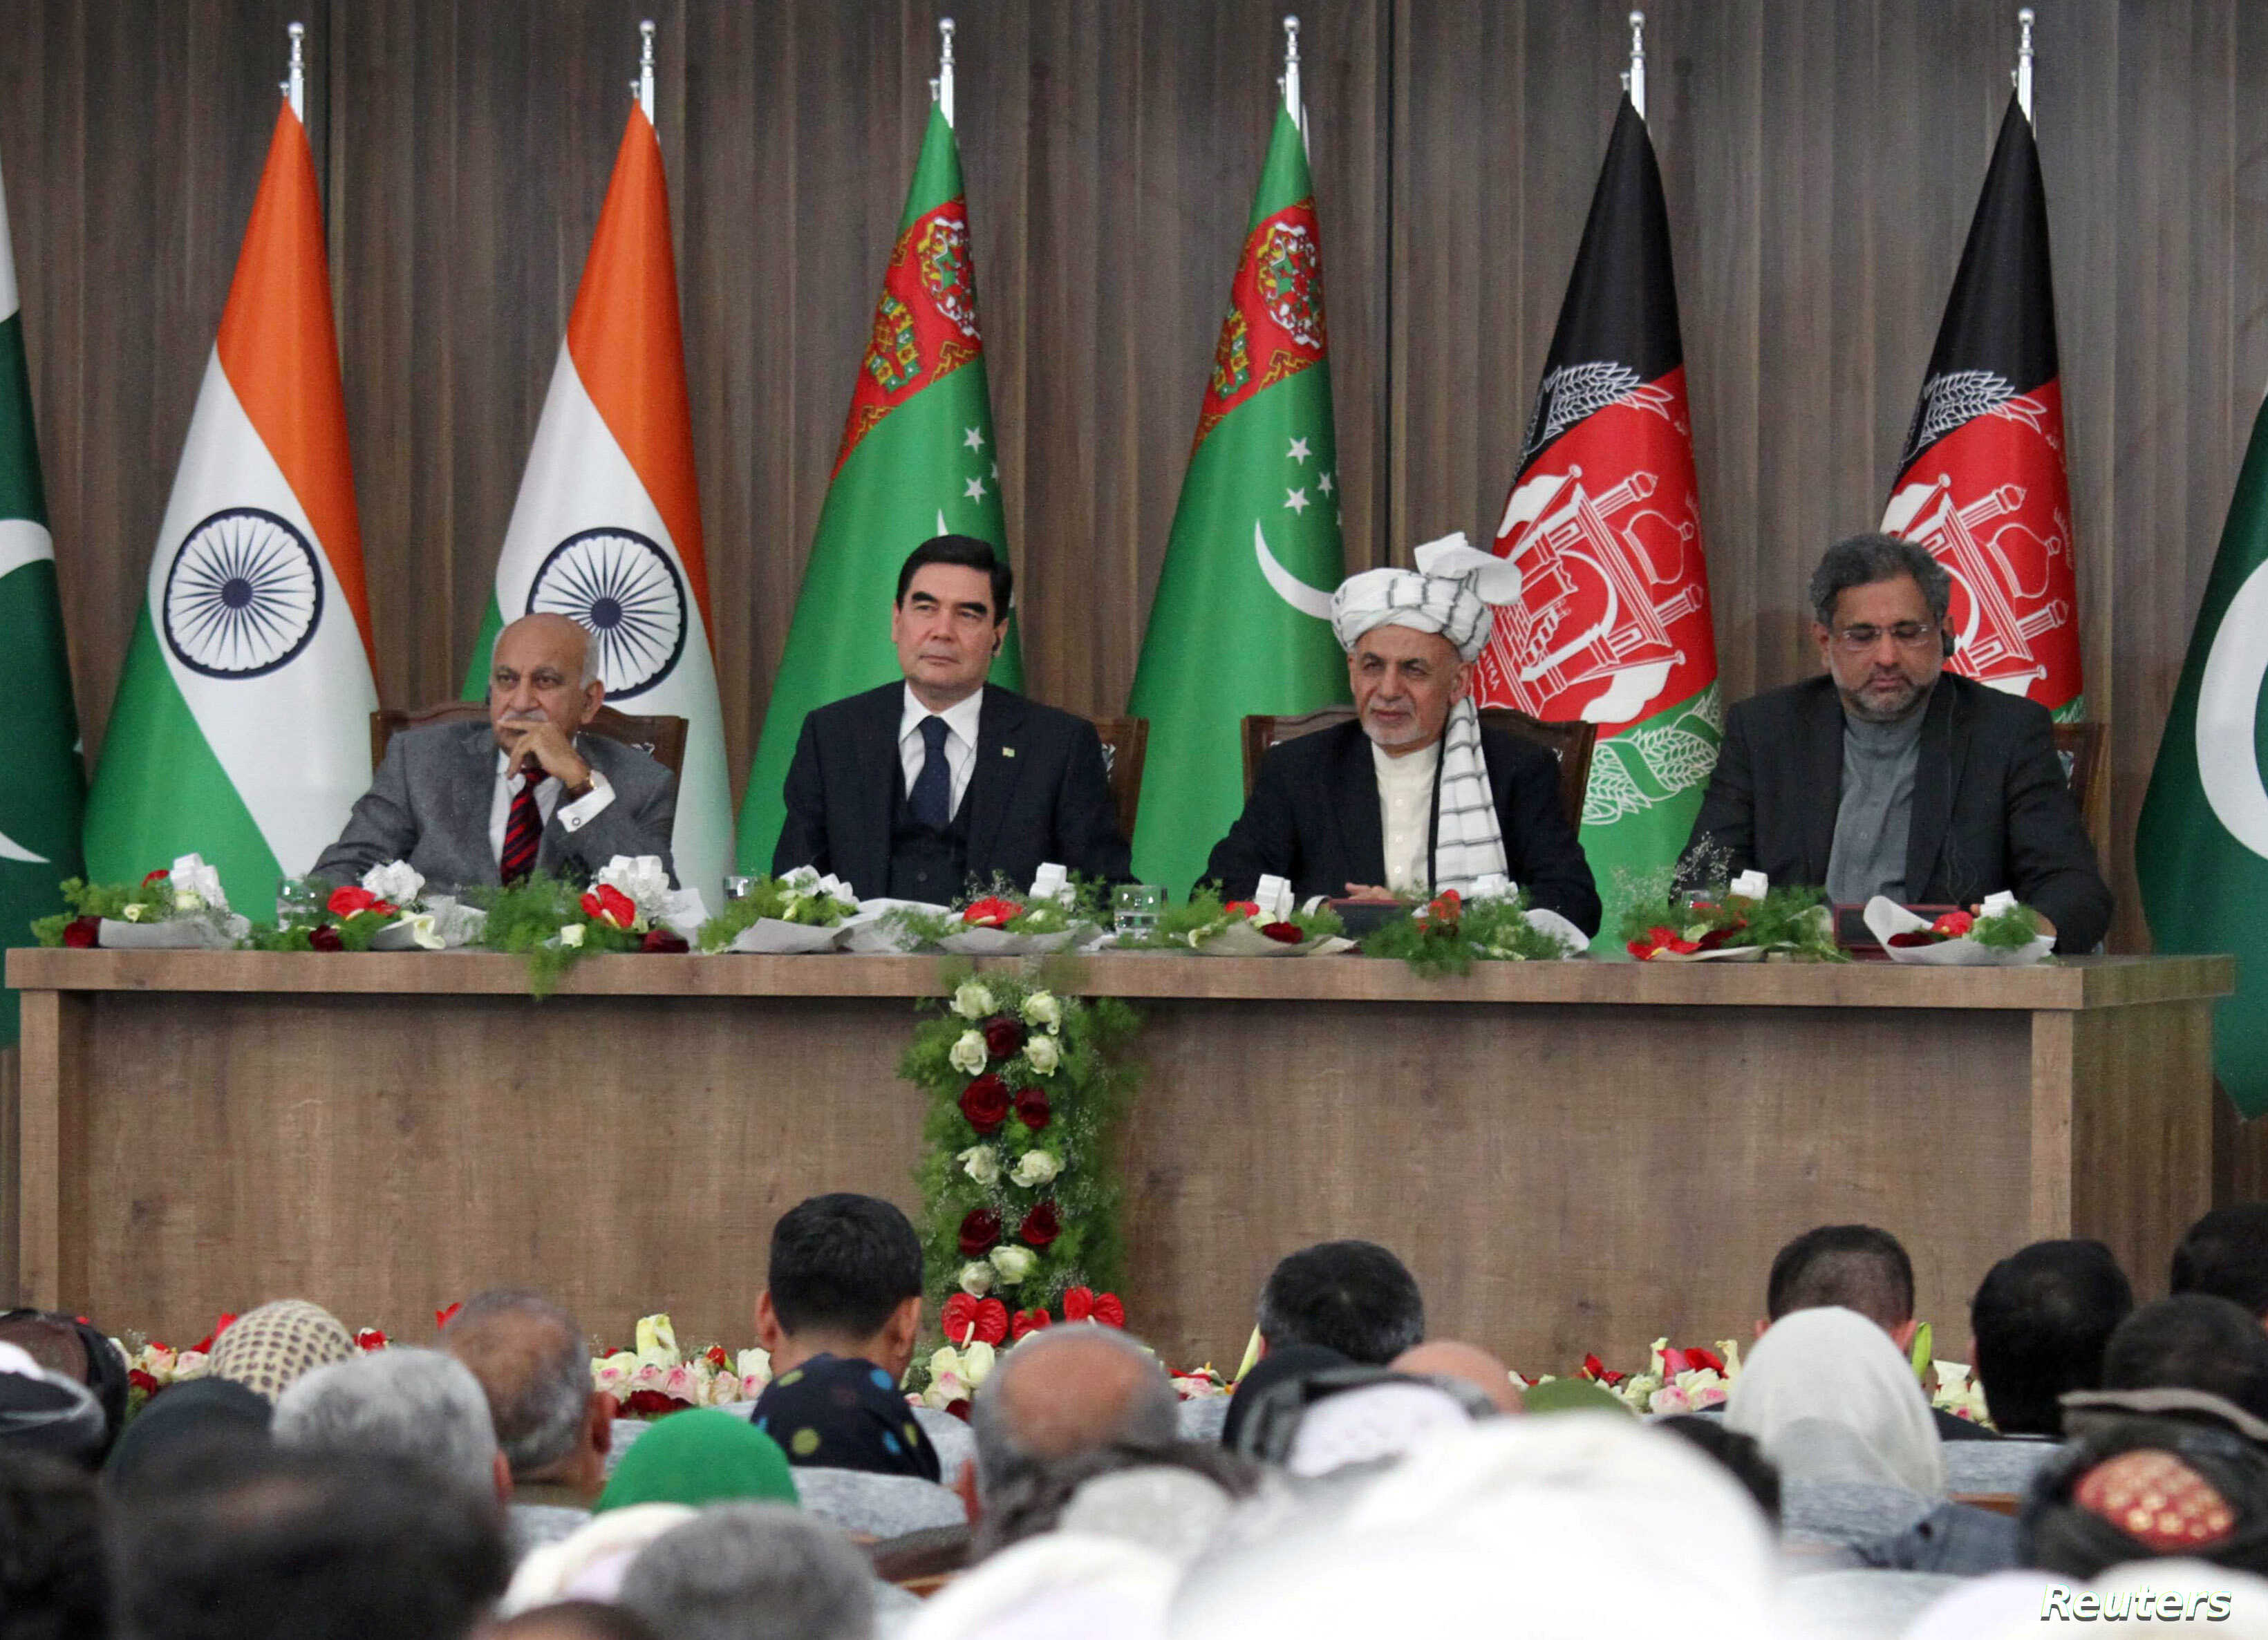 Afghanistan President Ashraf Ghani, 2nd right, Pakistani Prime Minister Shahid Khaqan Abbasi, right, Turkmenistan President Gurbanguly Berdymukhamedov, 2nd left, and India's Minister of State for External Affairs M.J. Akbar, left, attend the inaugura...